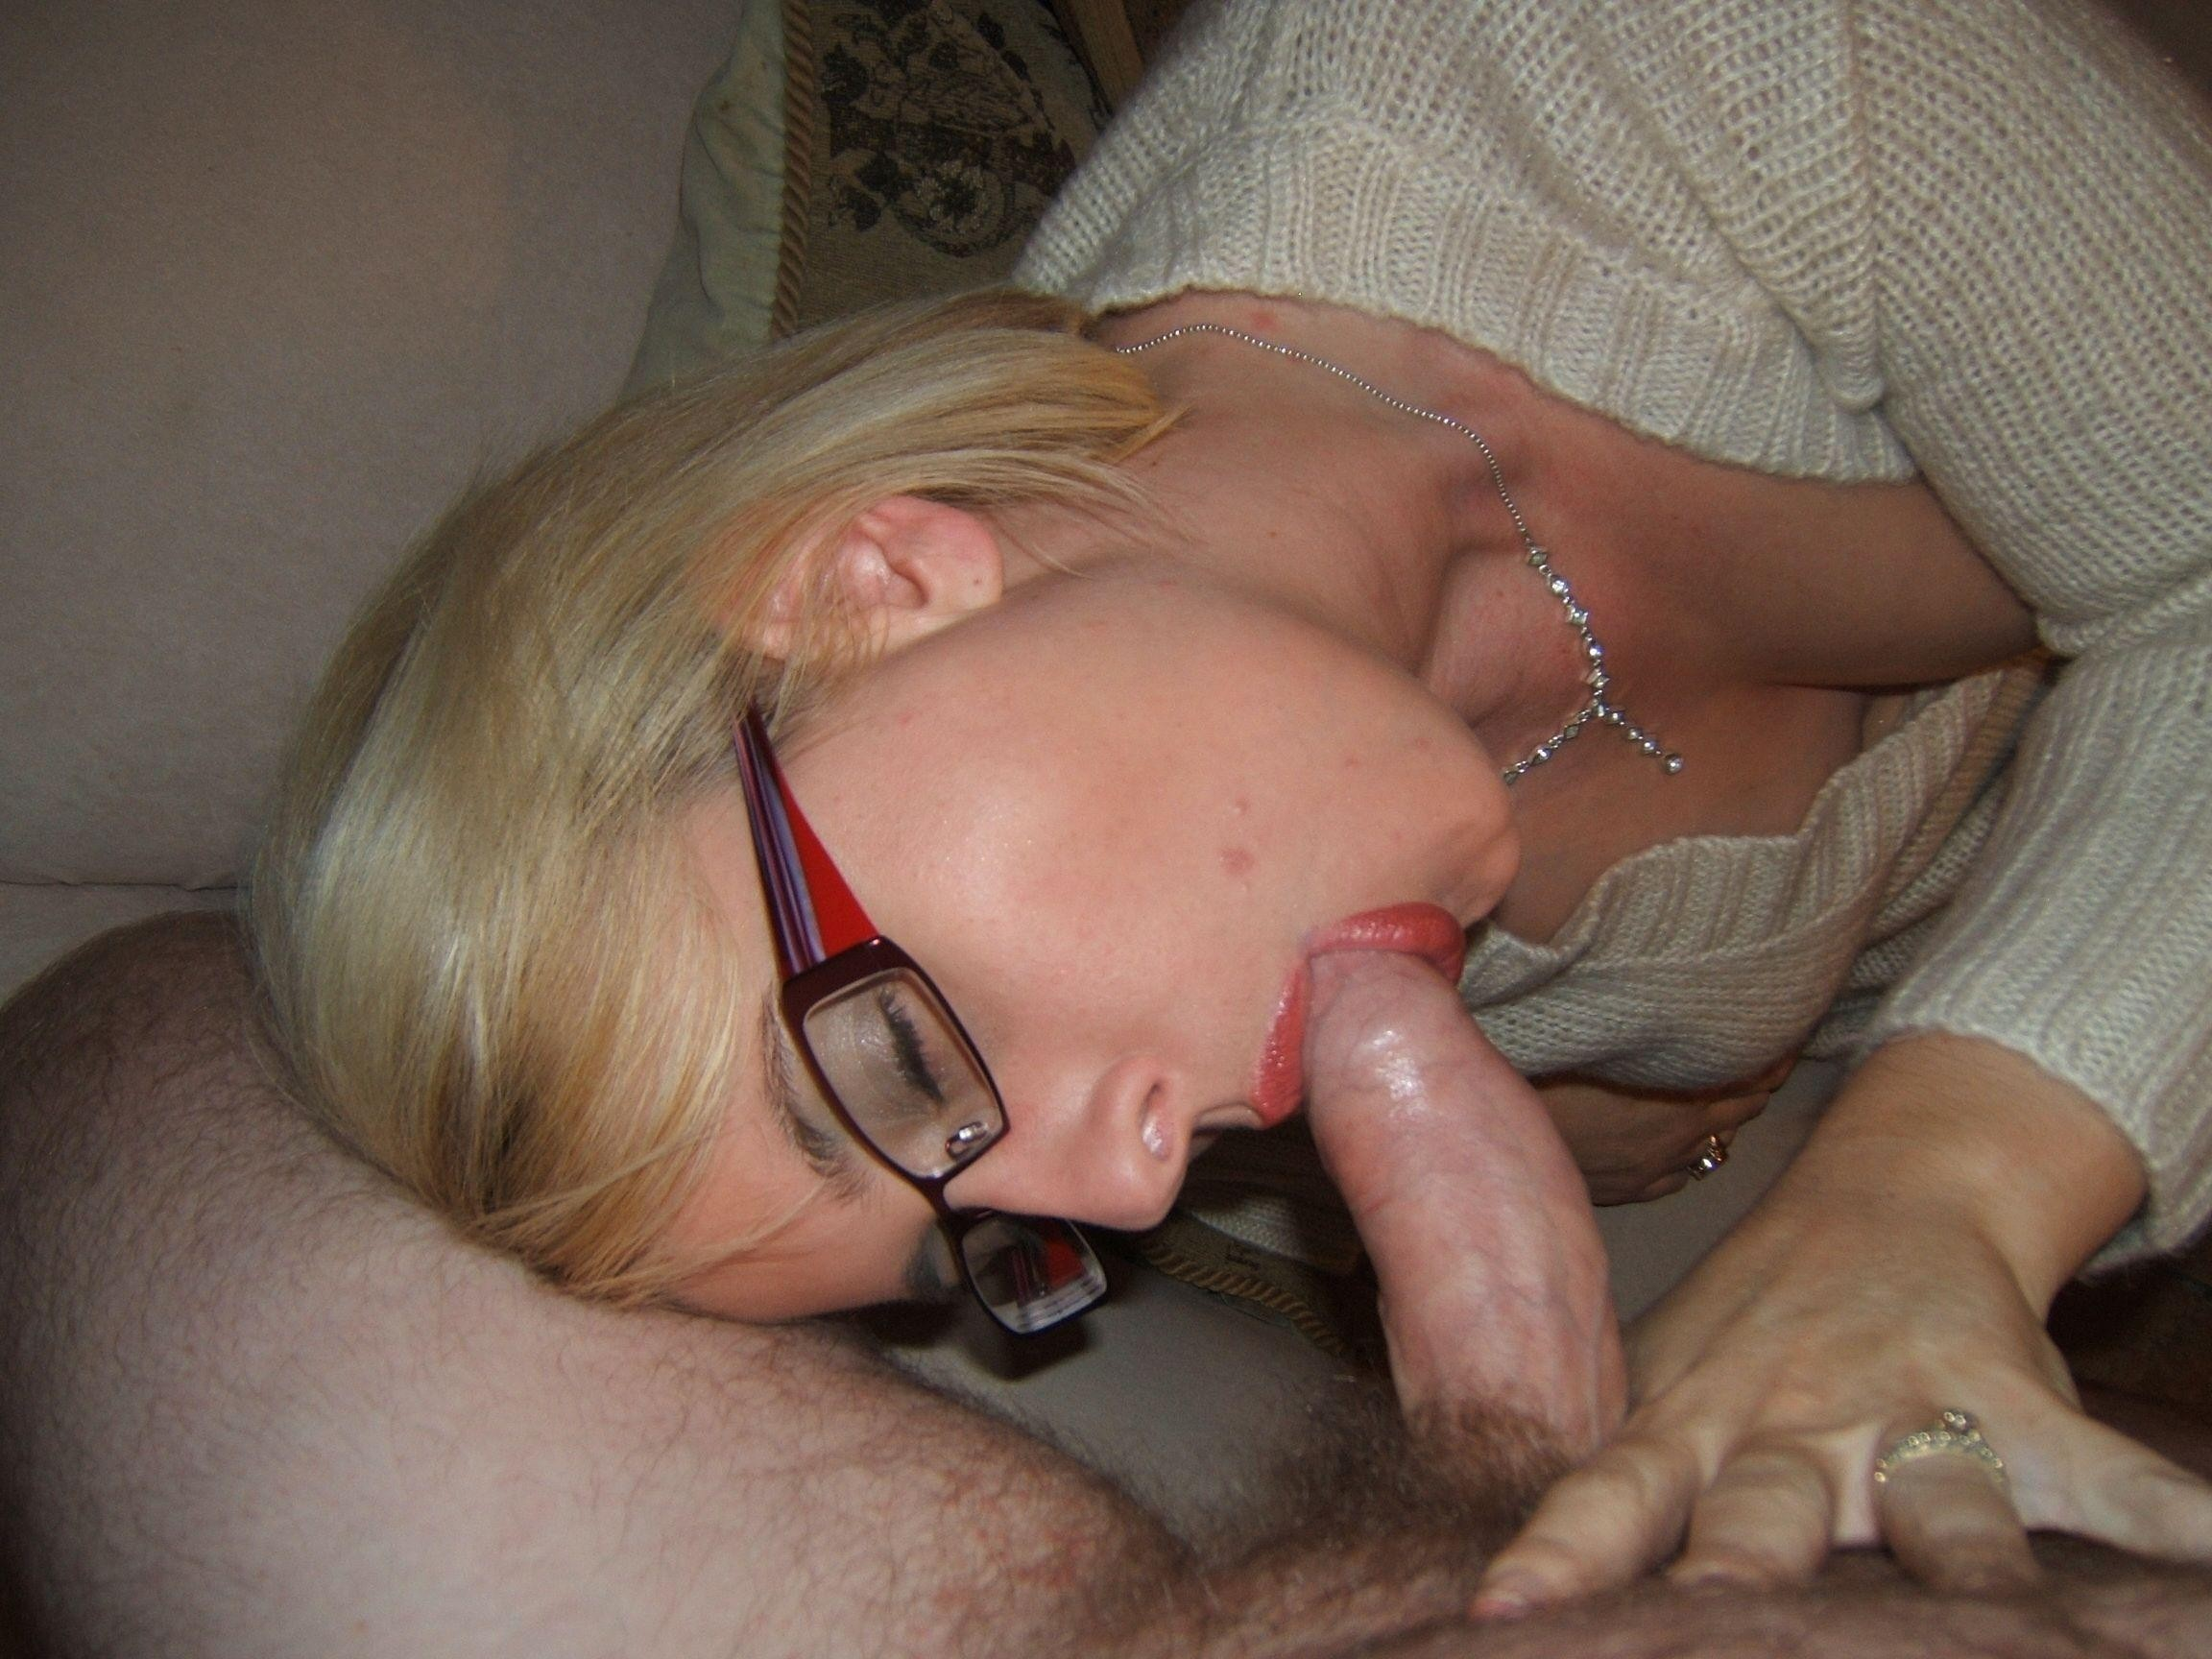 Milf amature mature galleries